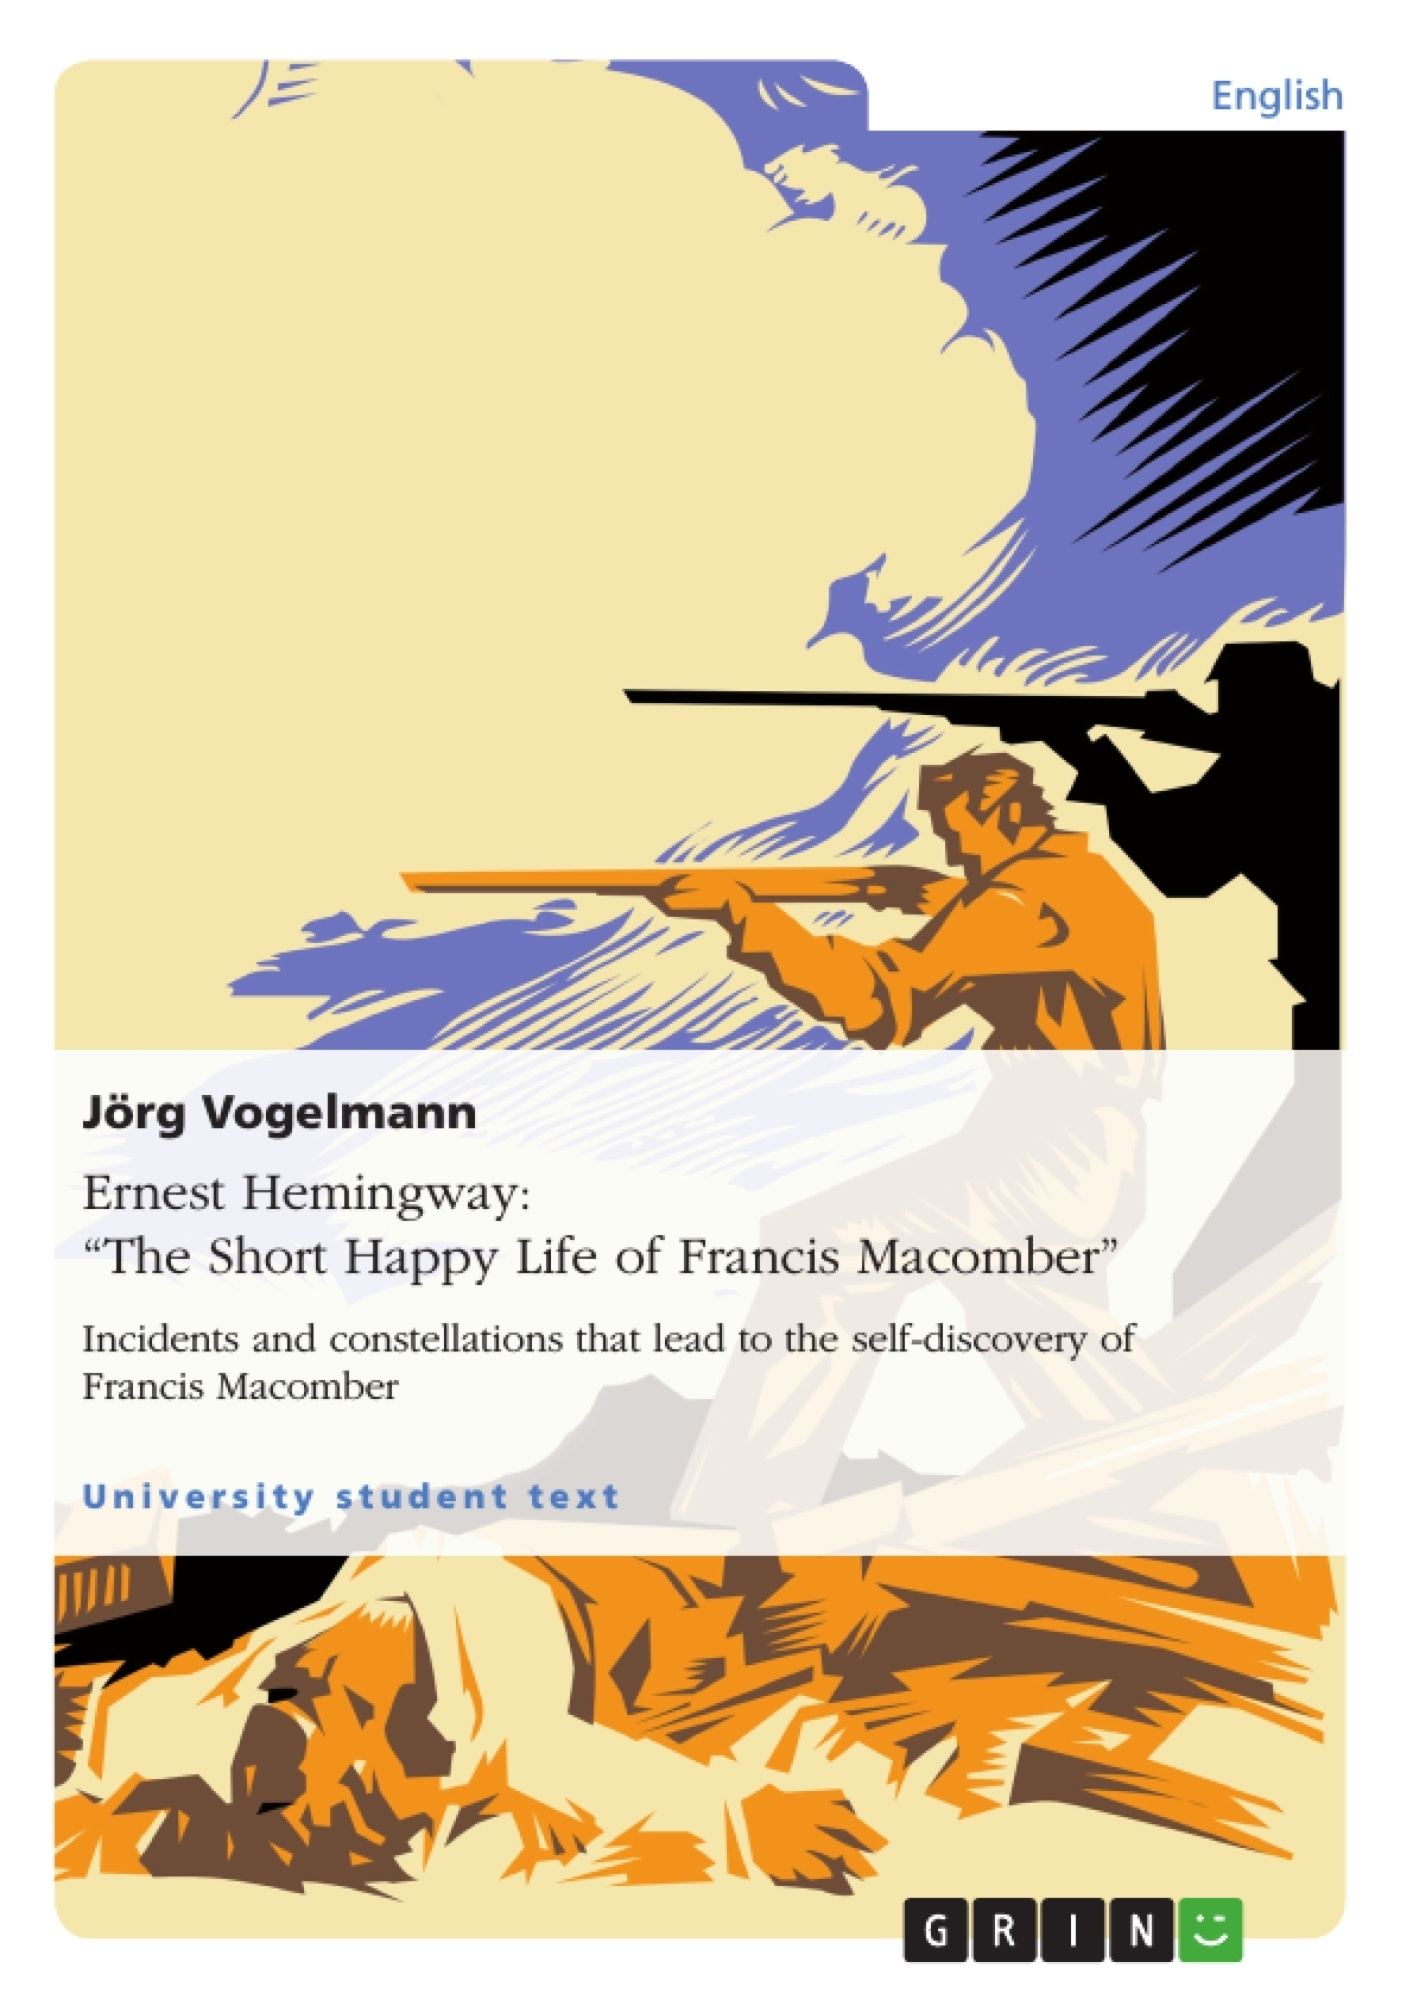 an analysis of ernest hemingways story the short happy life of francis macomber The selection of stories in this volume is based on the stories found in high-school and college literature anthologies that ranked them as not only the best of hemingway's short story output but also as the ones taught most frequently in high-school and college american literature courses, as well.